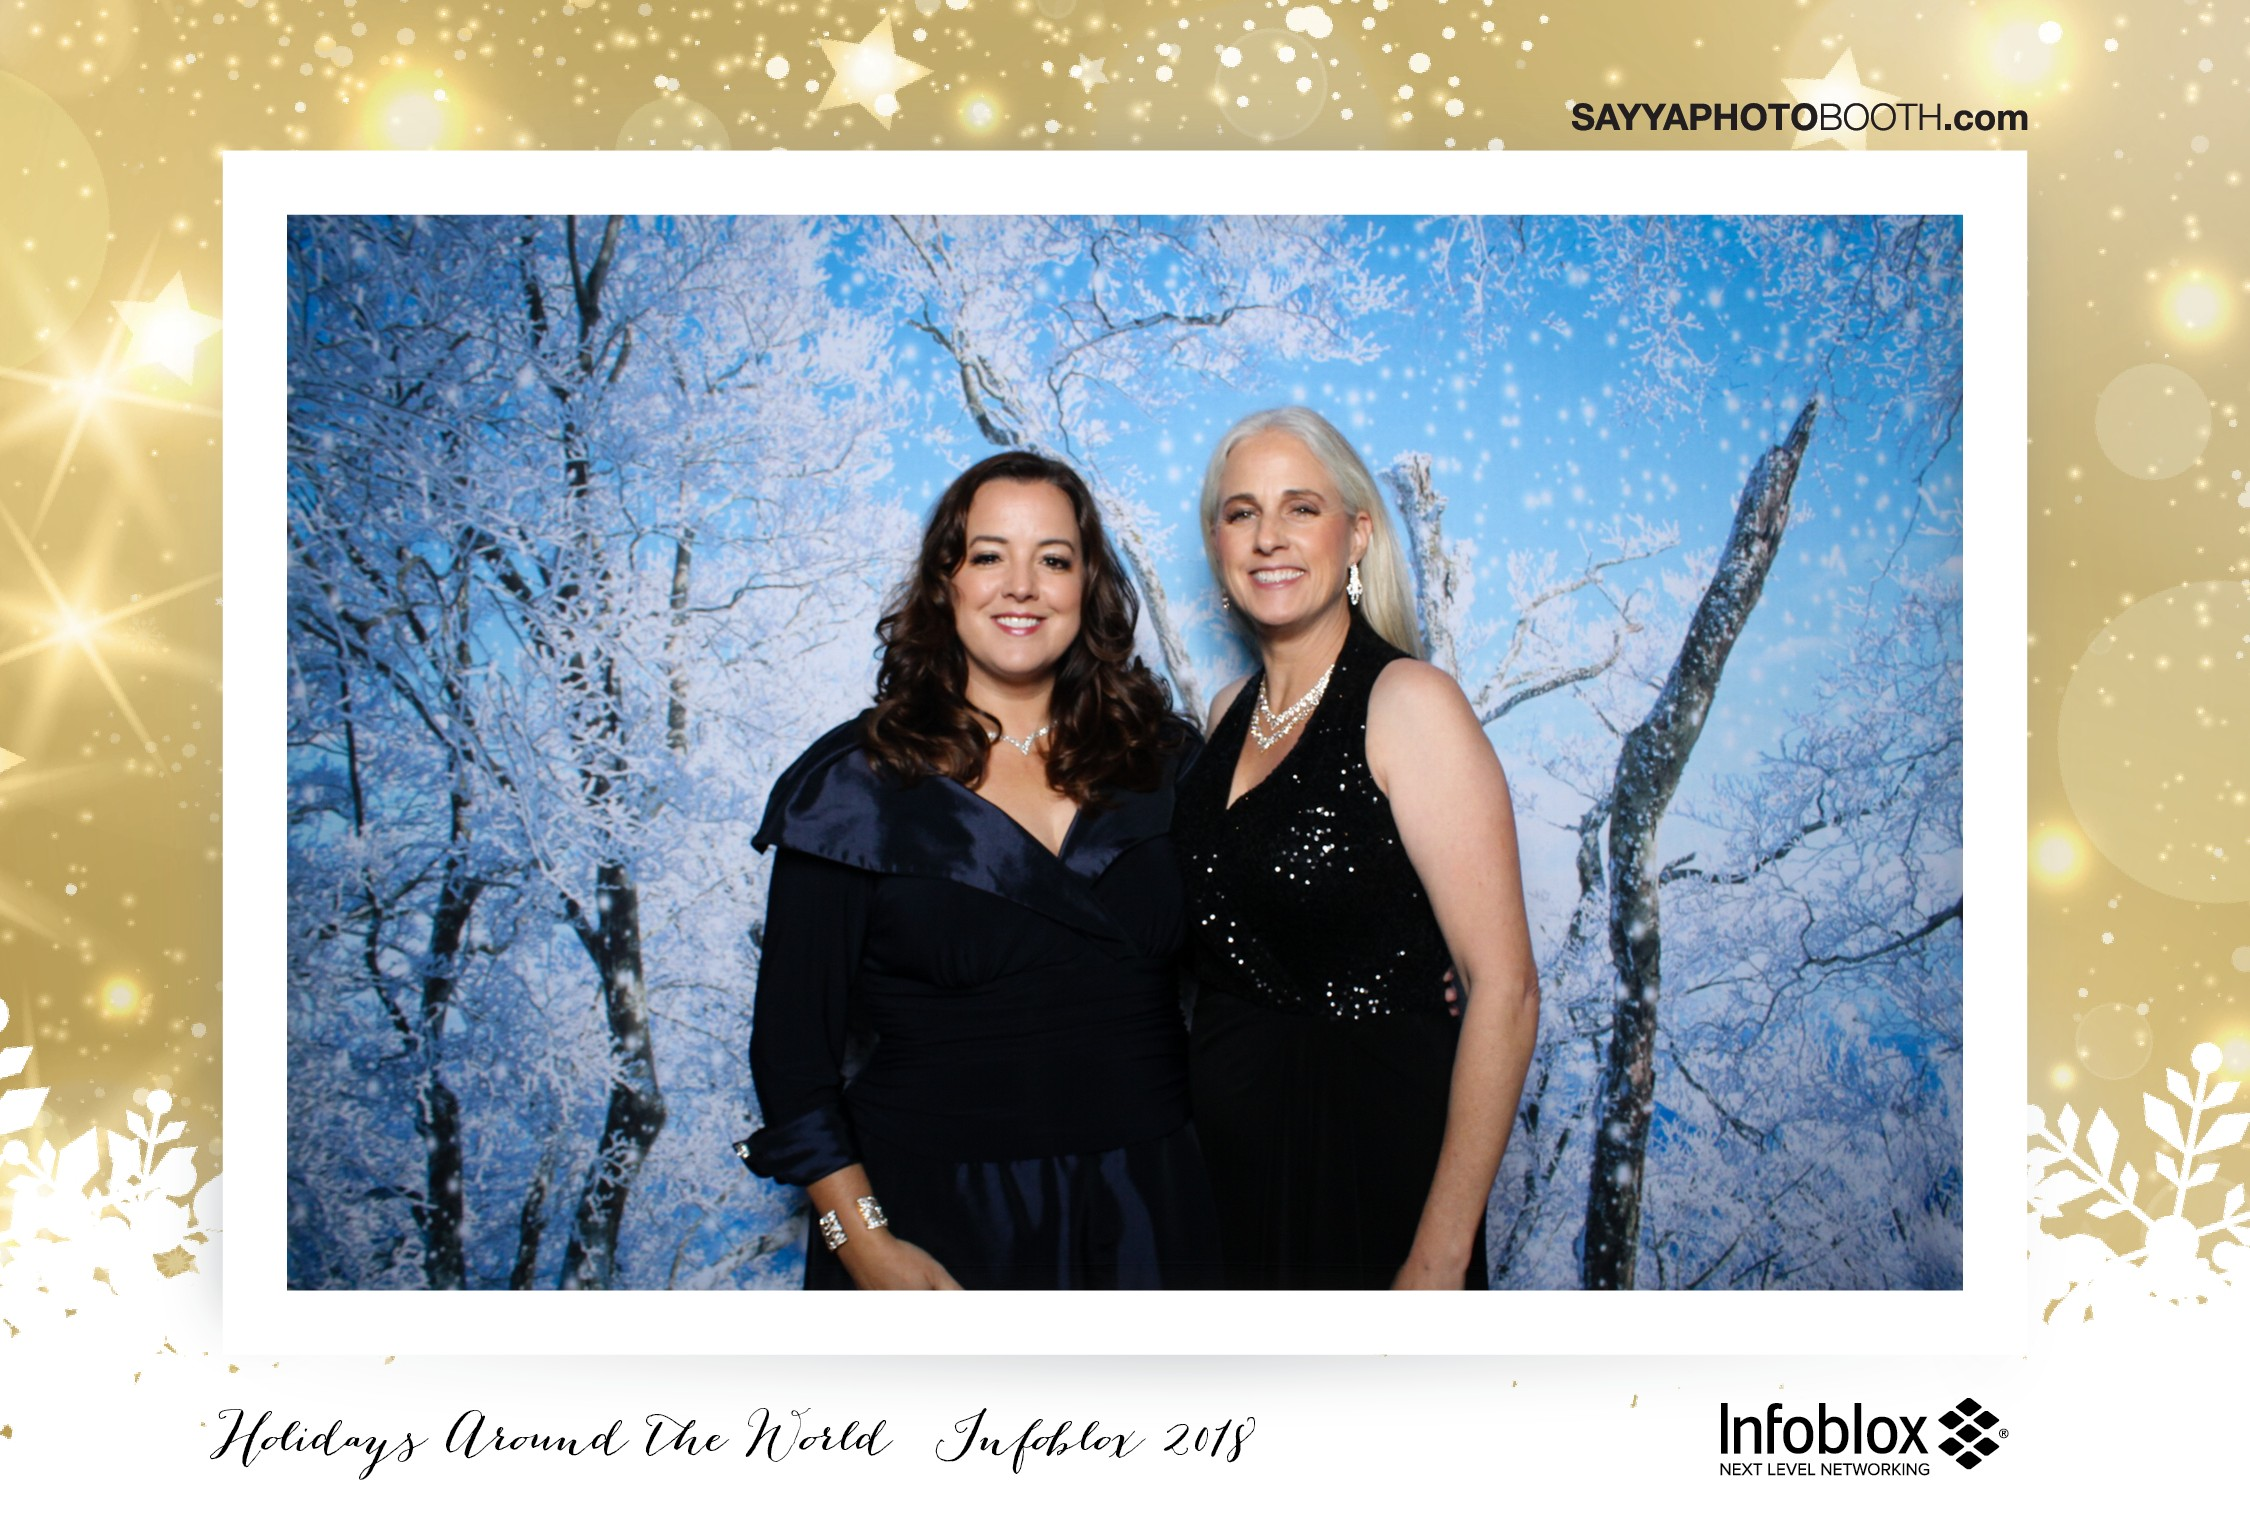 Infoblox Holiday Around the World